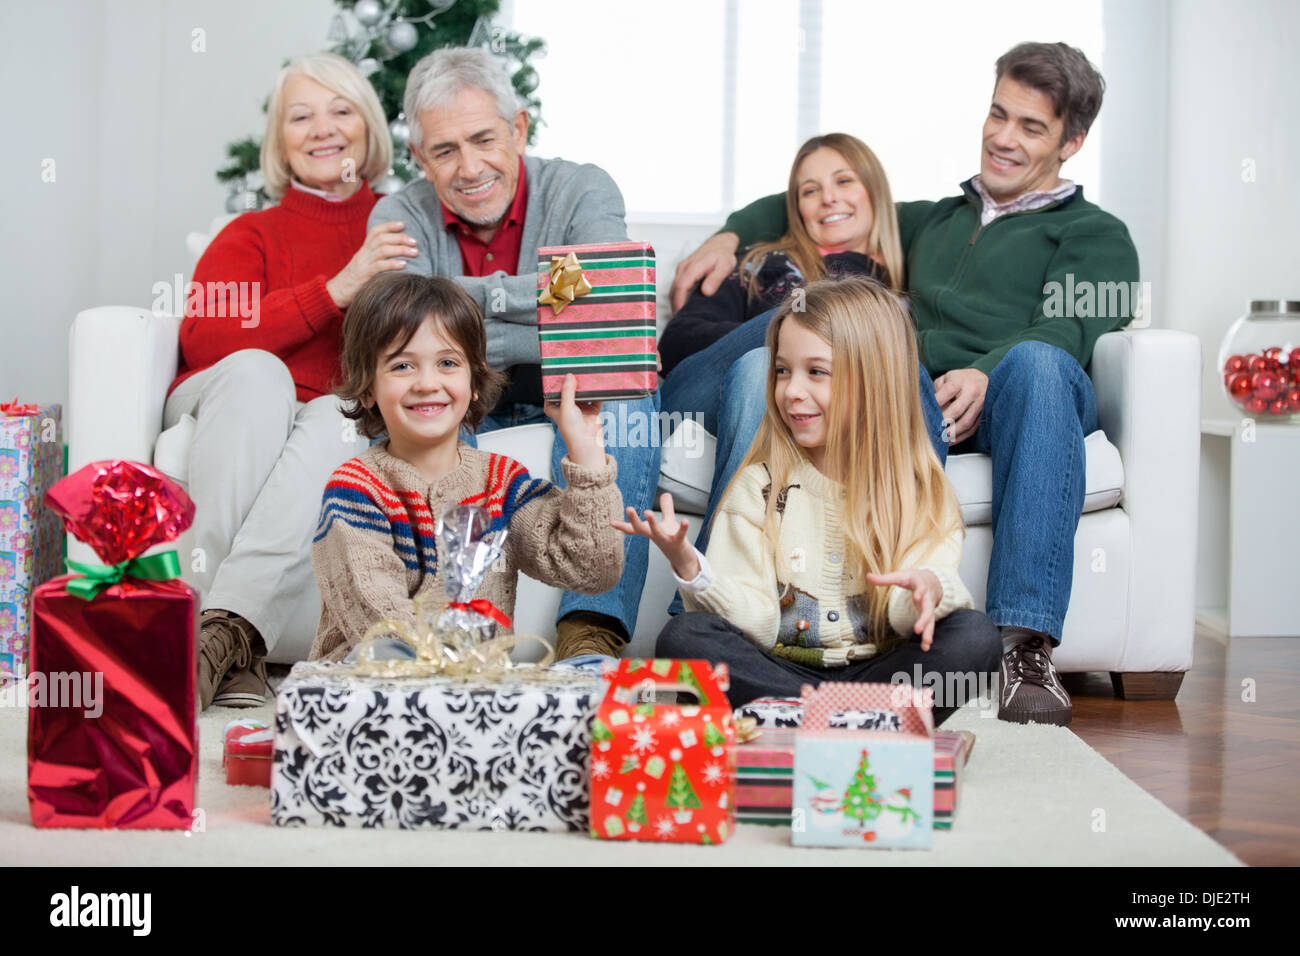 Boy Holding Christmas Gift With Family In House - Stock Image